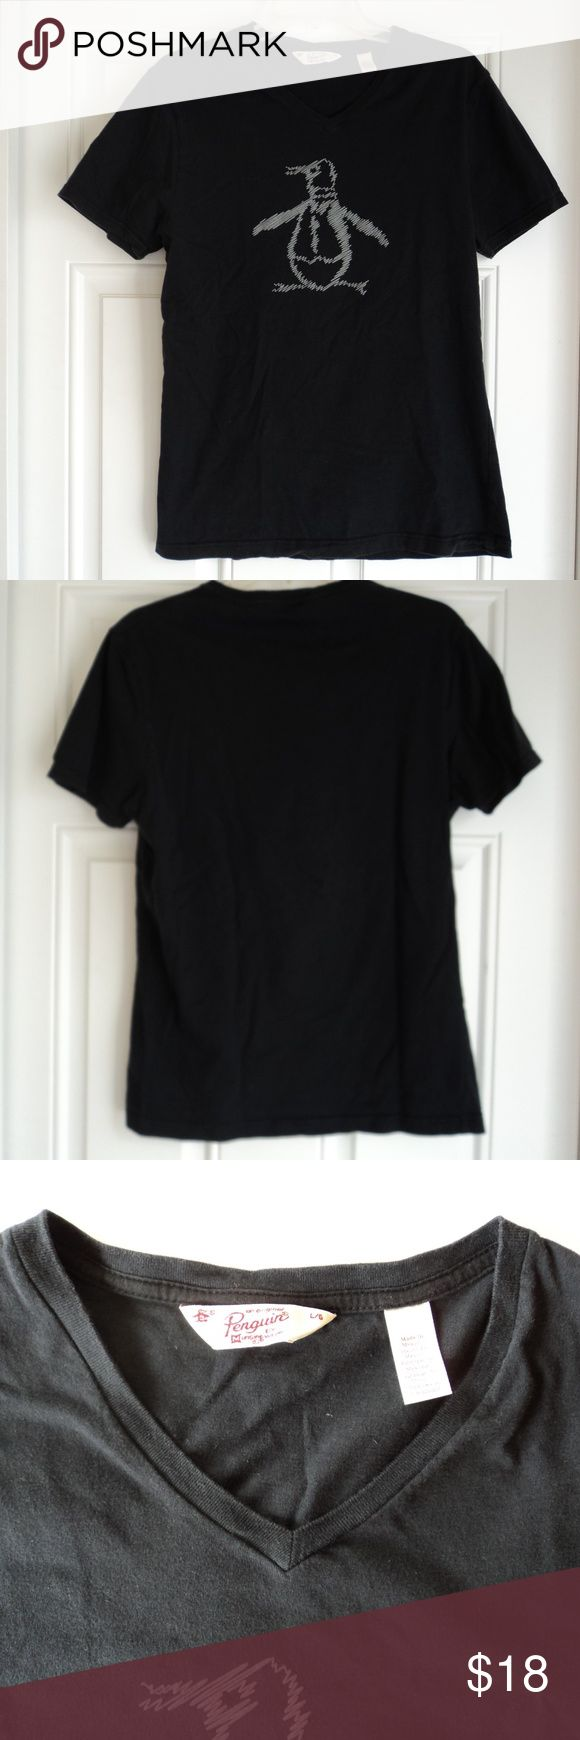 "Original Penguin Men's V-Neck T-shirt Large Penguin brand Men's V-Neck T-shirt Large short sleeve.  Black with grey Penguin emblem embossed on the front. Gently used condition. 100% cotton. It measures 19"" from underarm to underarm, 26.5"" in length from top of shoulder to bottom hem. Sleeve length 8"". Pet free and smoke free home. Original Penguin Shirts Tees - Short Sleeve"